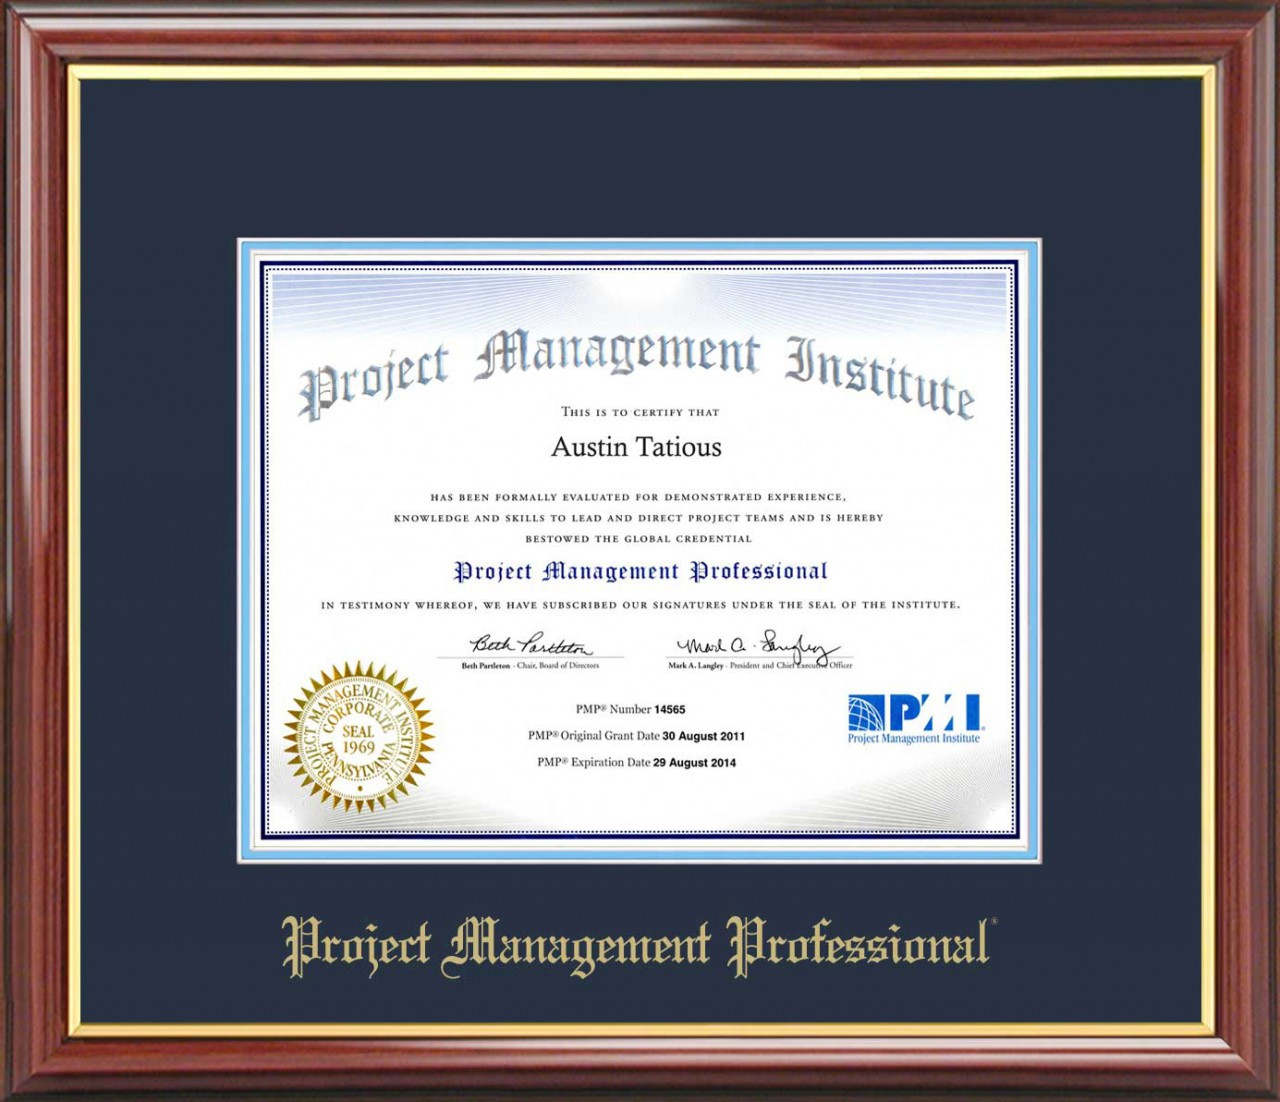 Pmp Certificate Frame Mahogany With Navy Mat